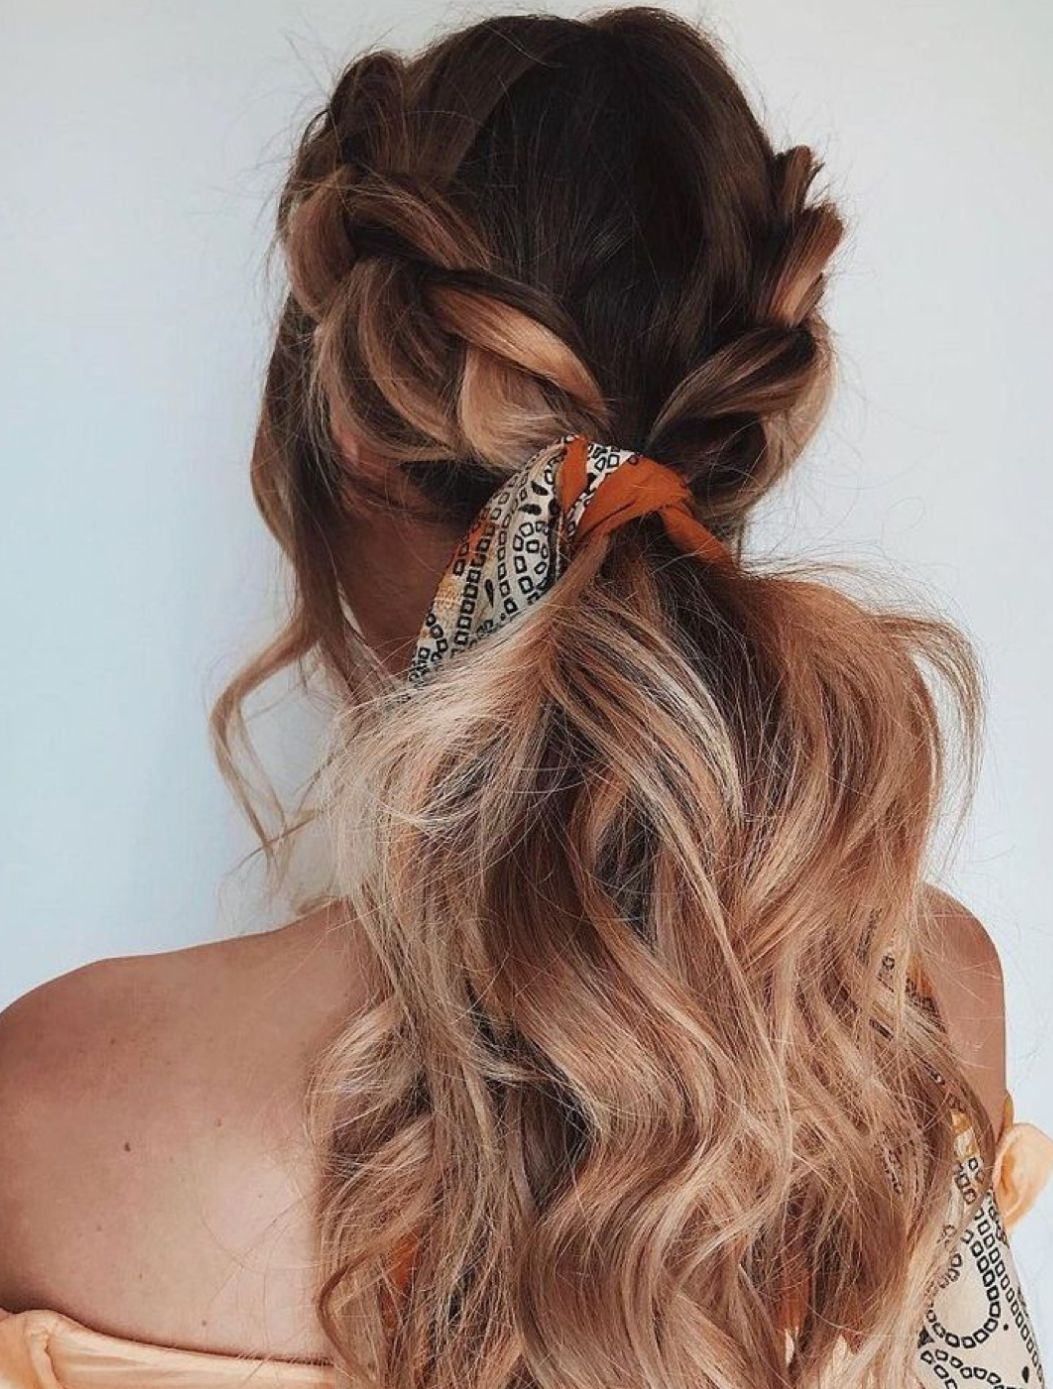 Pin by sammi vernaza on outfit pinterest hair style hair makeup